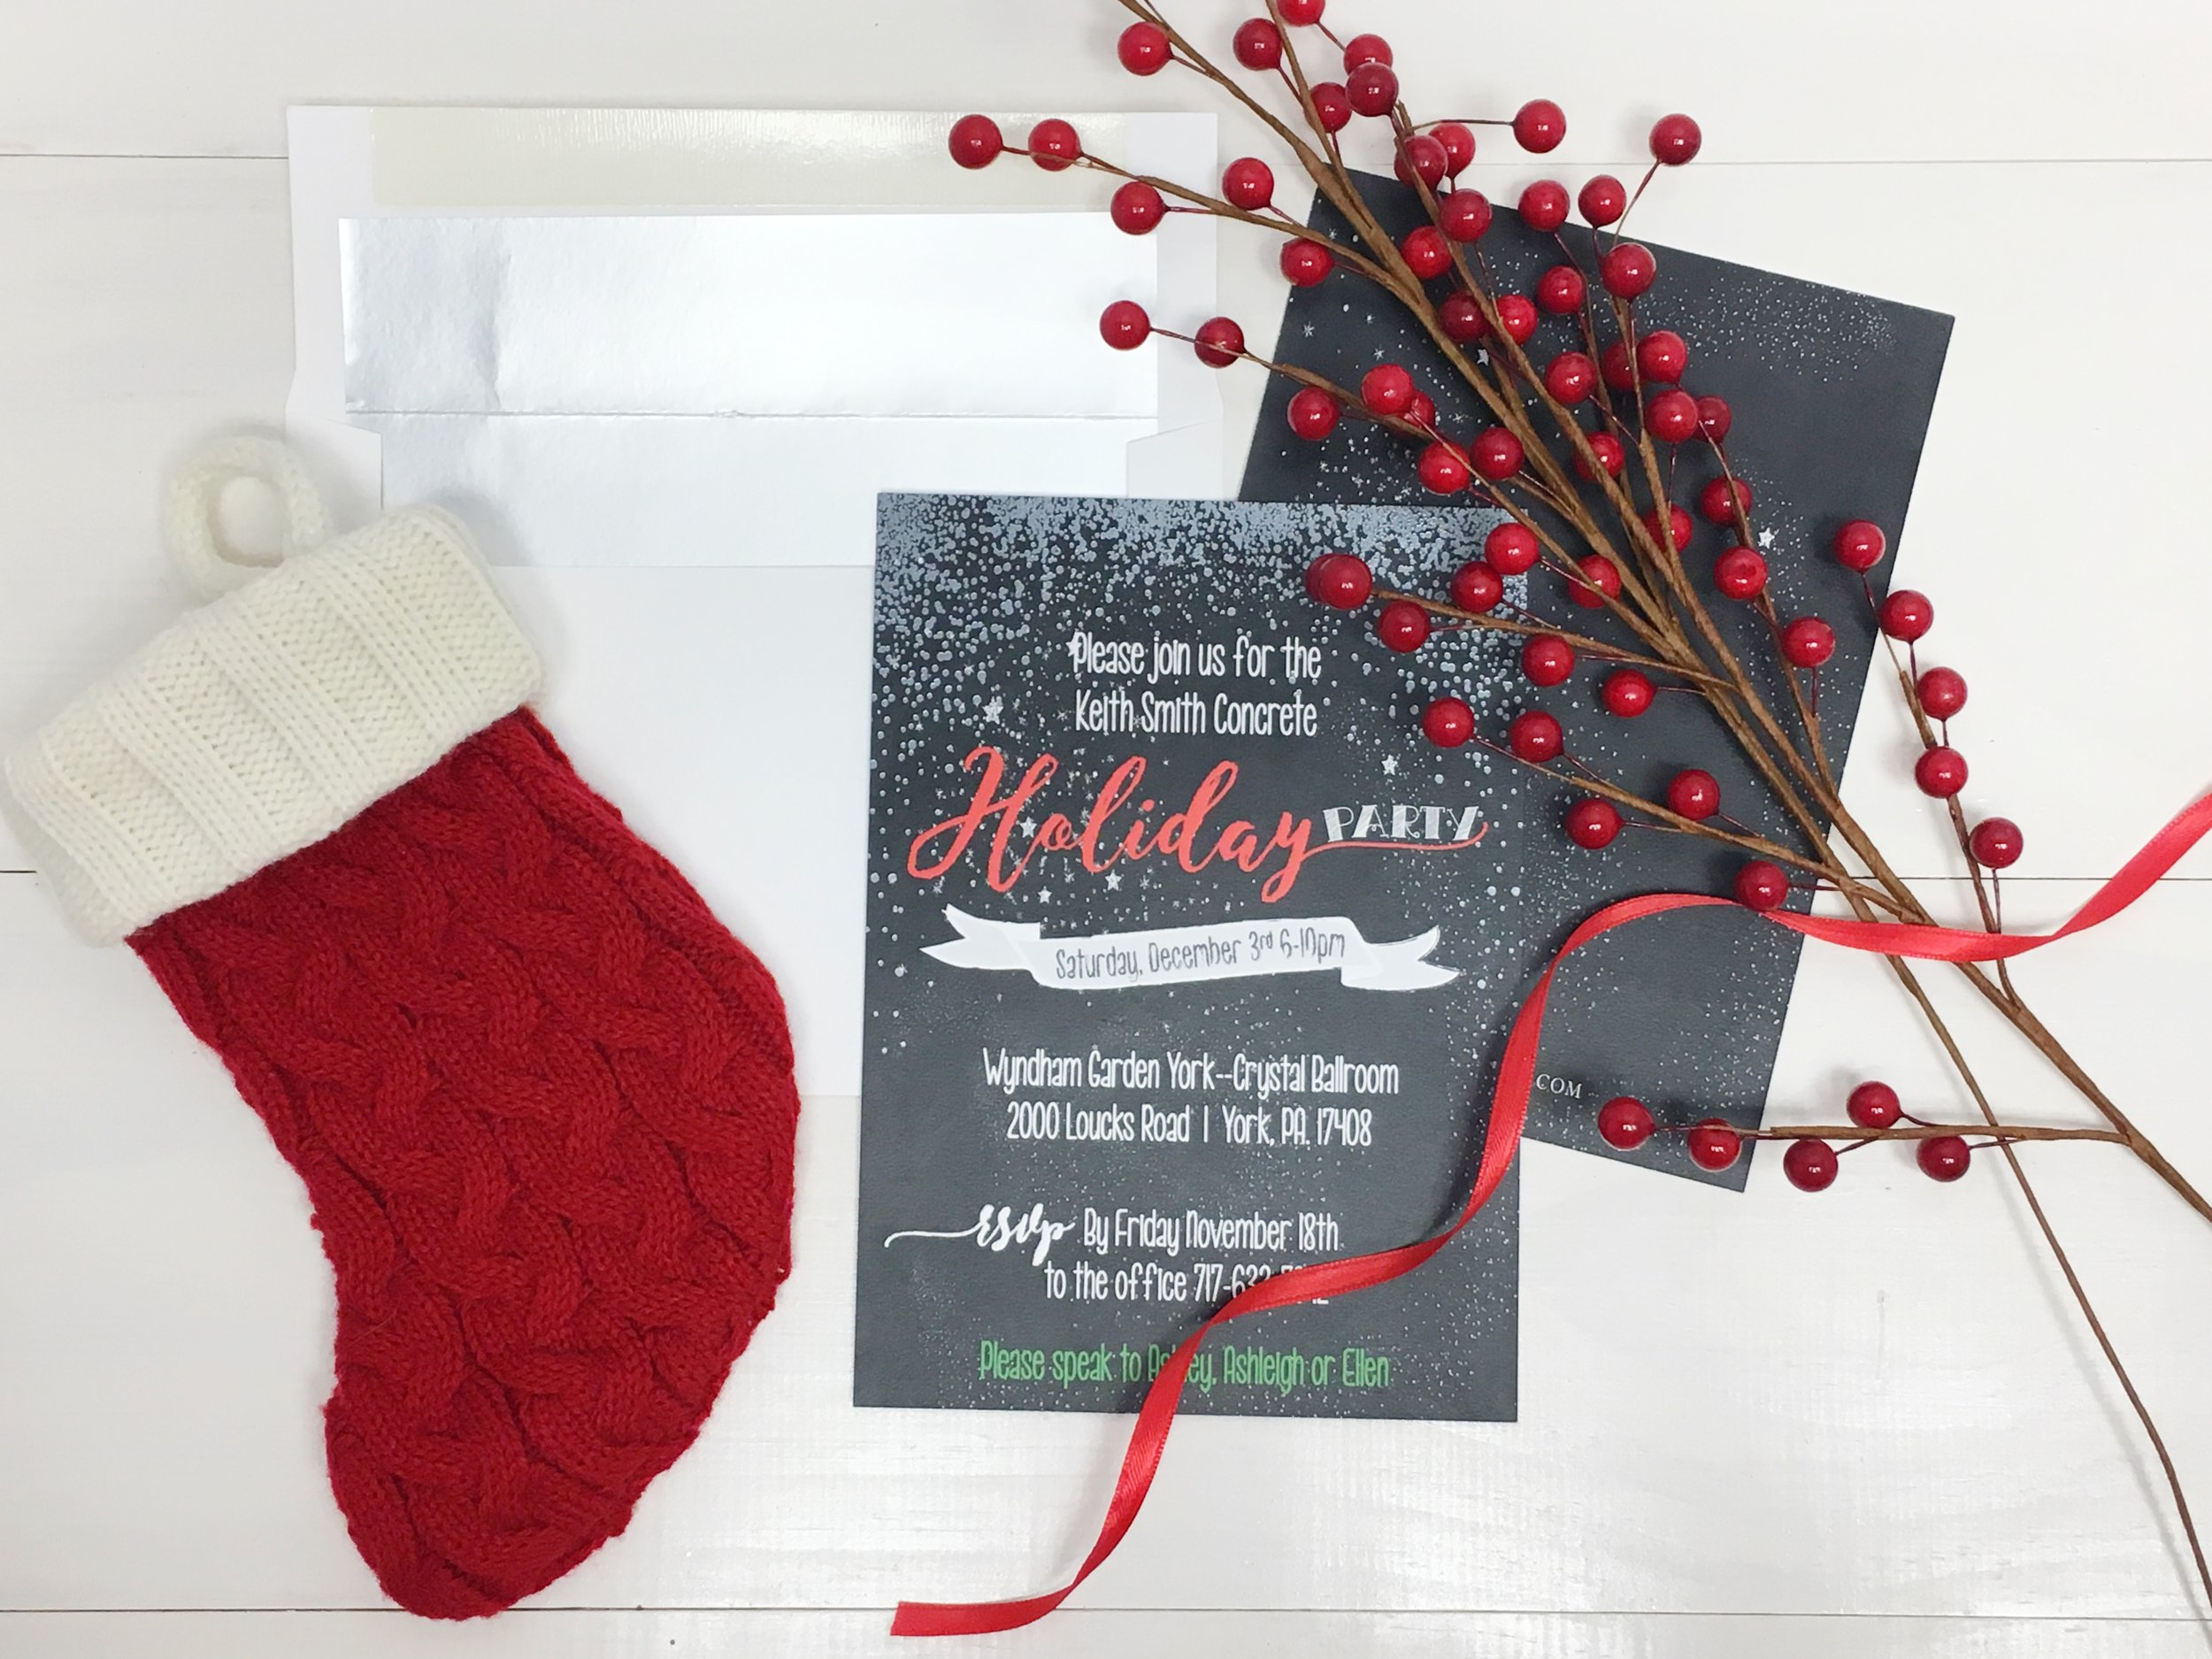 KDS Holiday party chalkboard invitation foil press 2.jpg